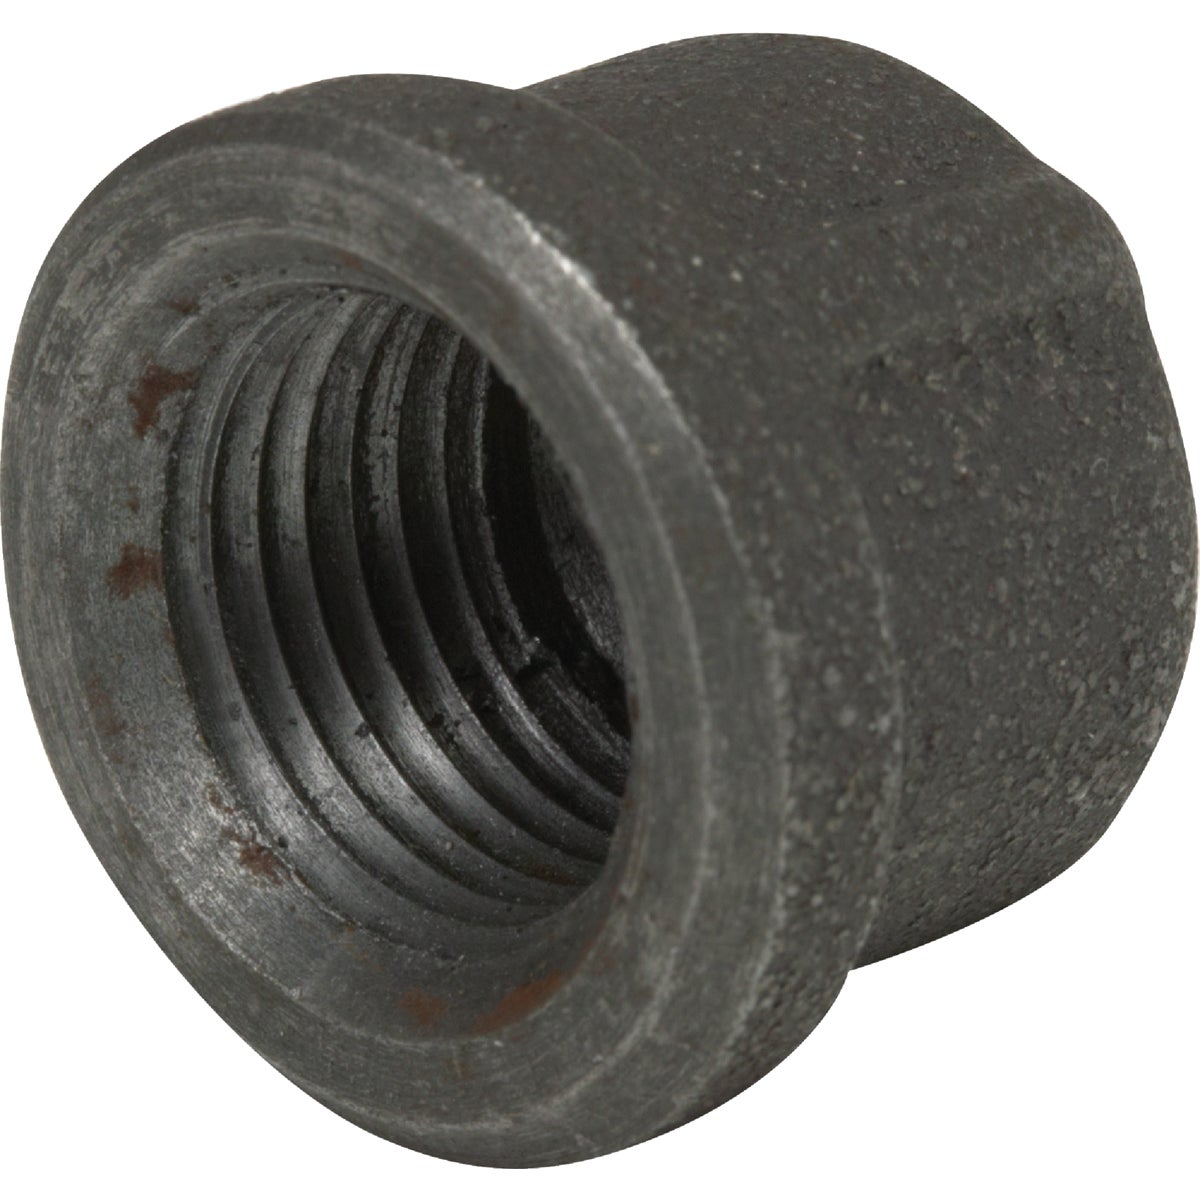 "1-1/4"" BLK CAP - 8700132353 by Anvil International"